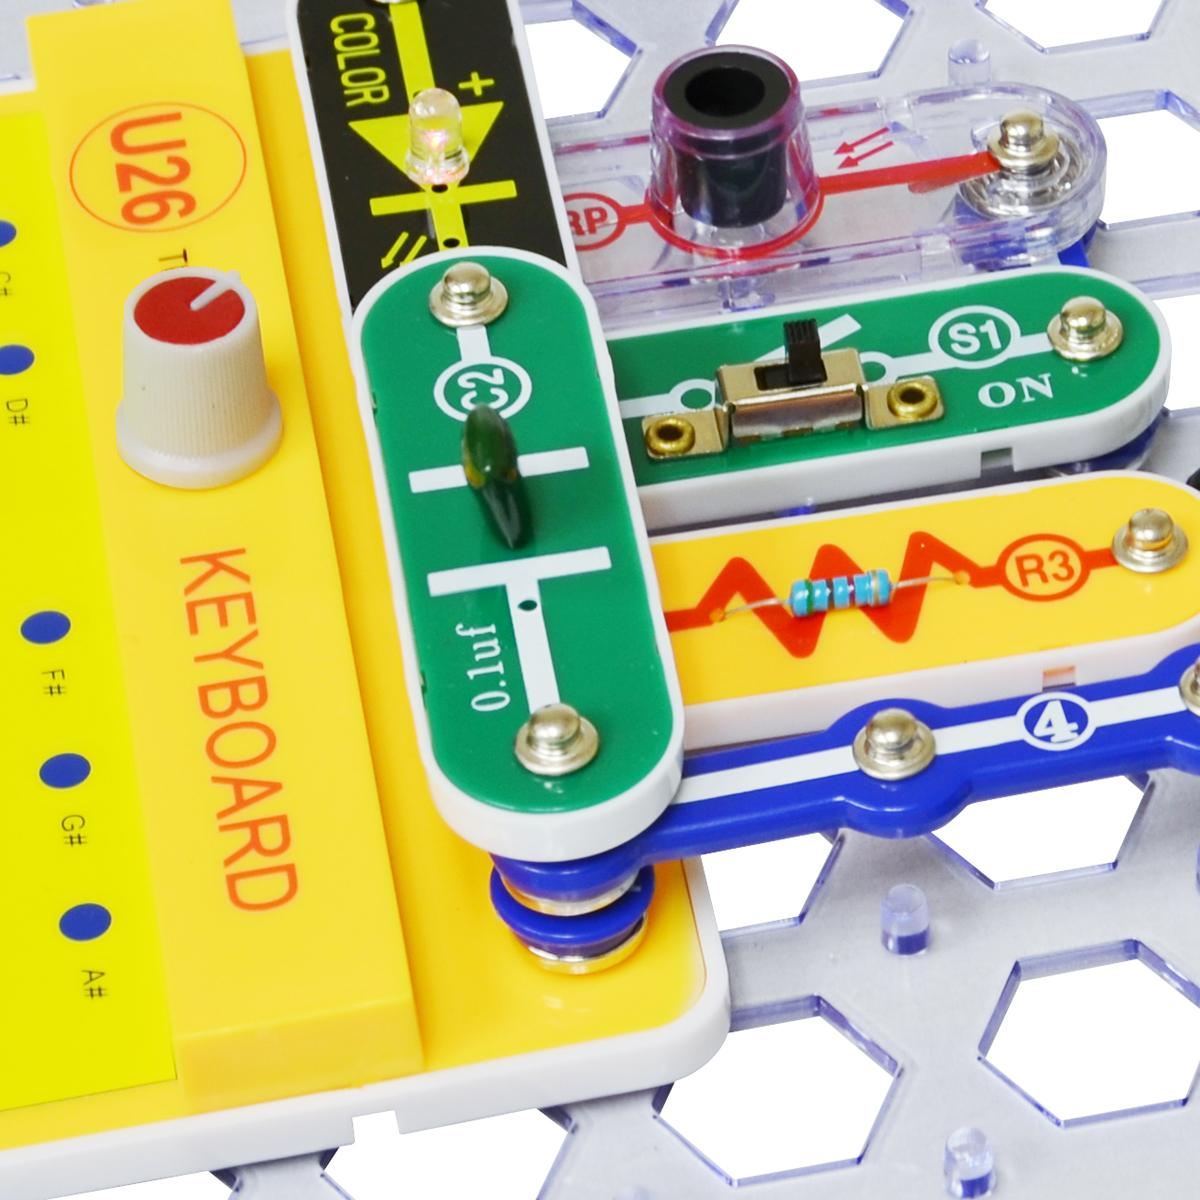 Buy Elenco Snap Circuits Sound Online At Low Prices In India Pro Sc500 Electronics Discovery Kit Science Create Working Electronic